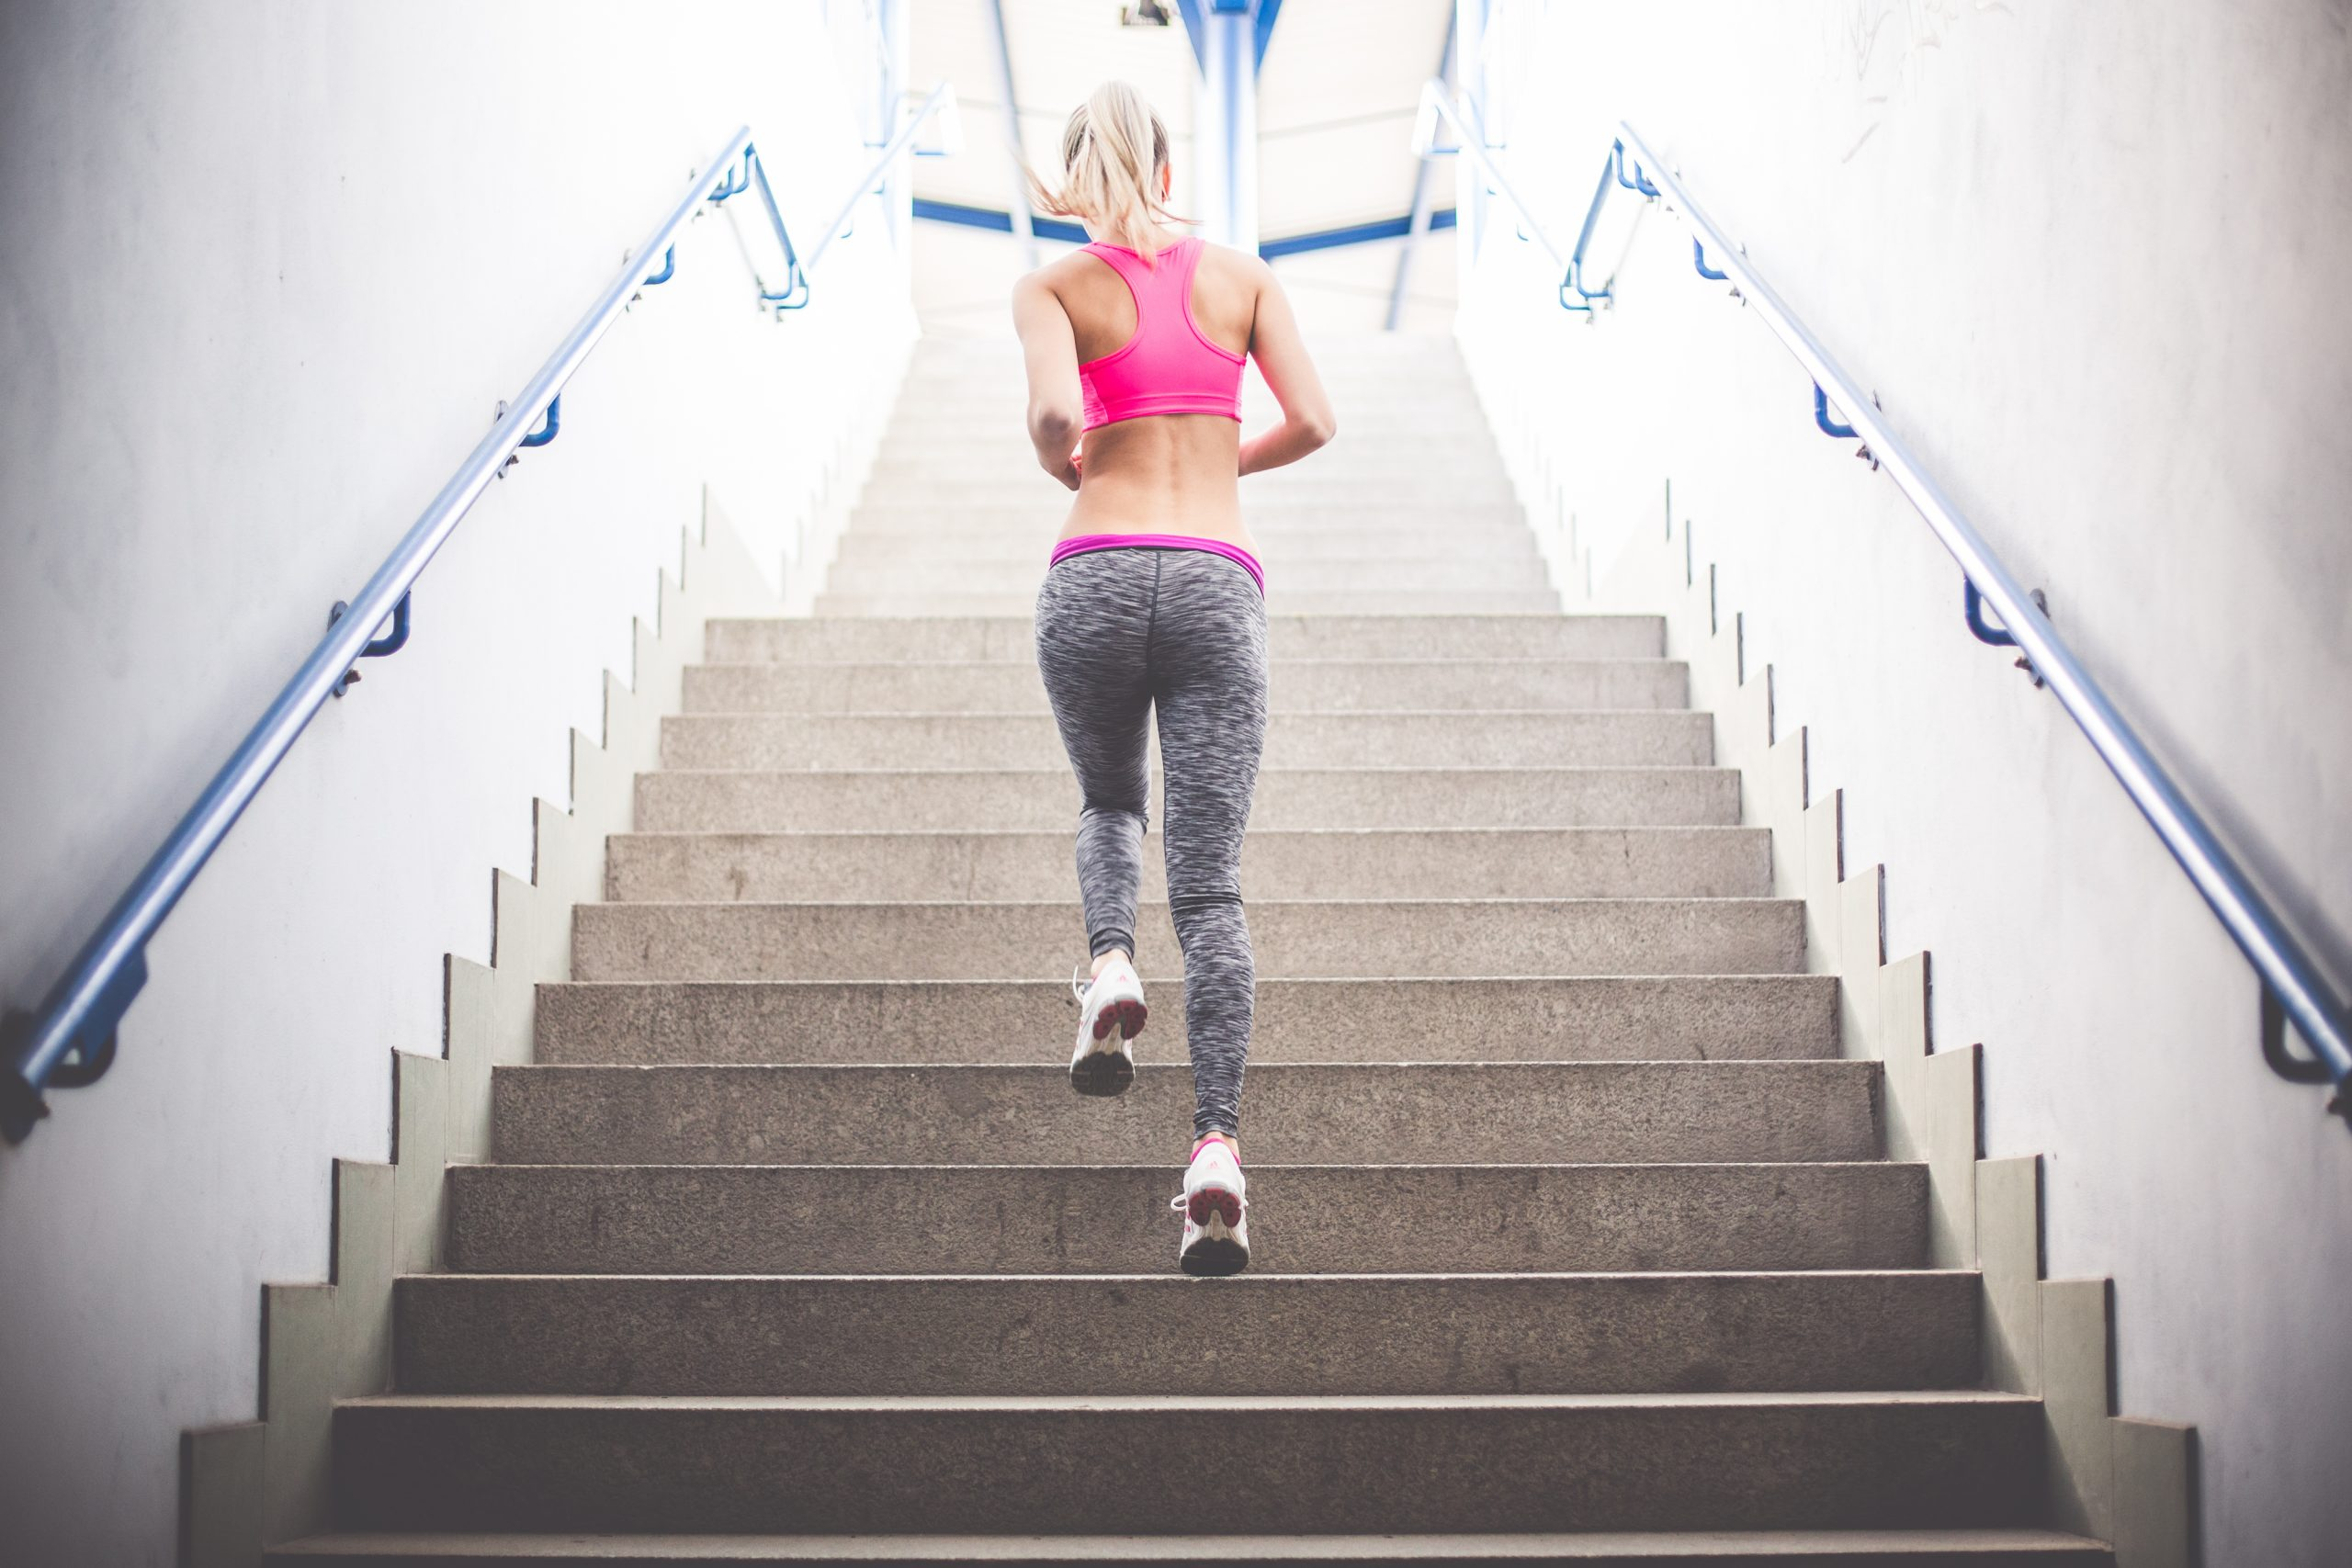 5 Top gym myths crushed and the truth behind them